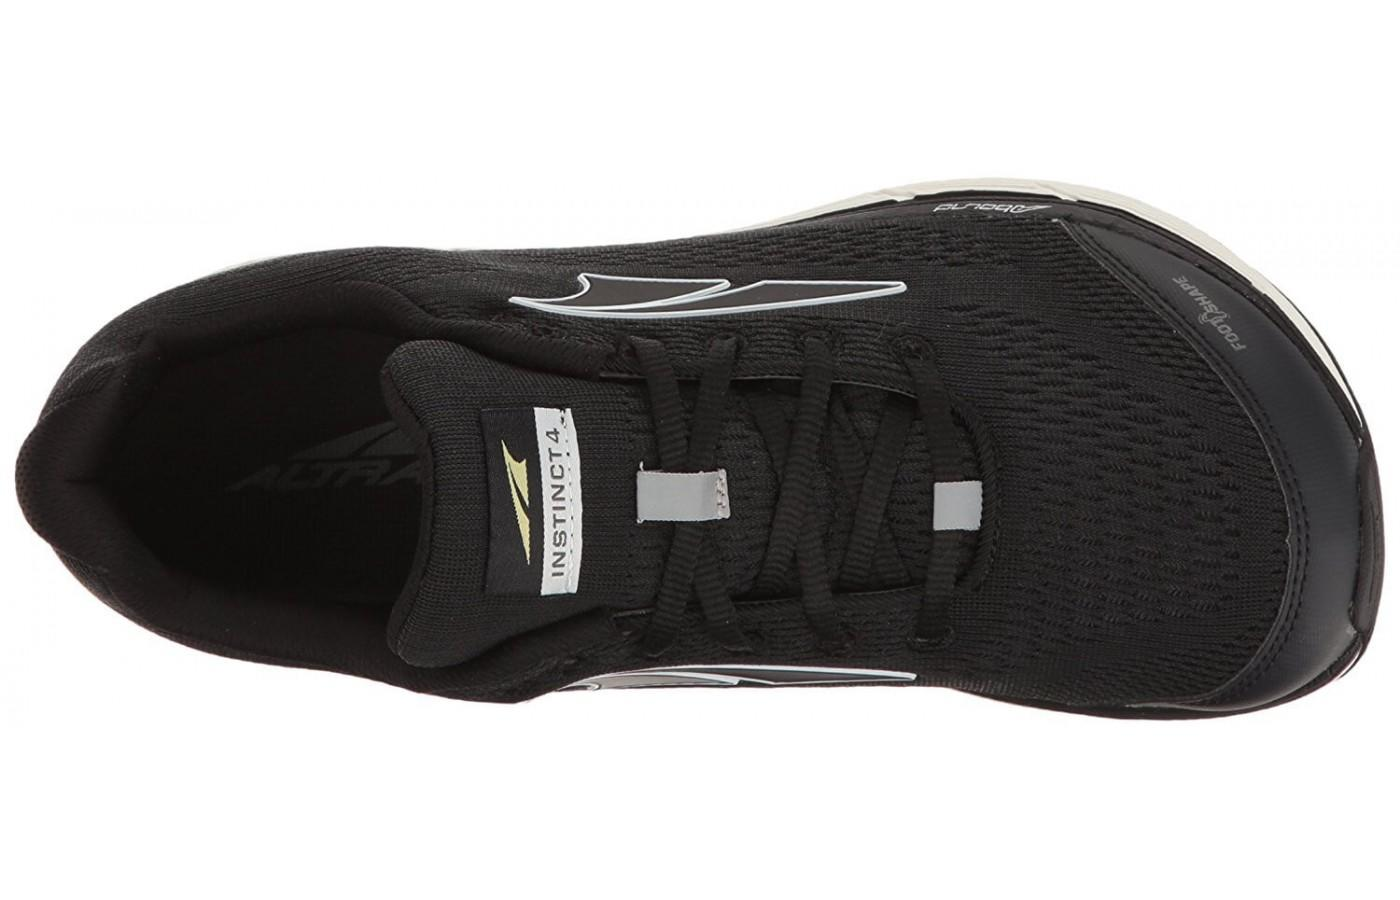 The mesh upper of the Instinct 4 is very breathable